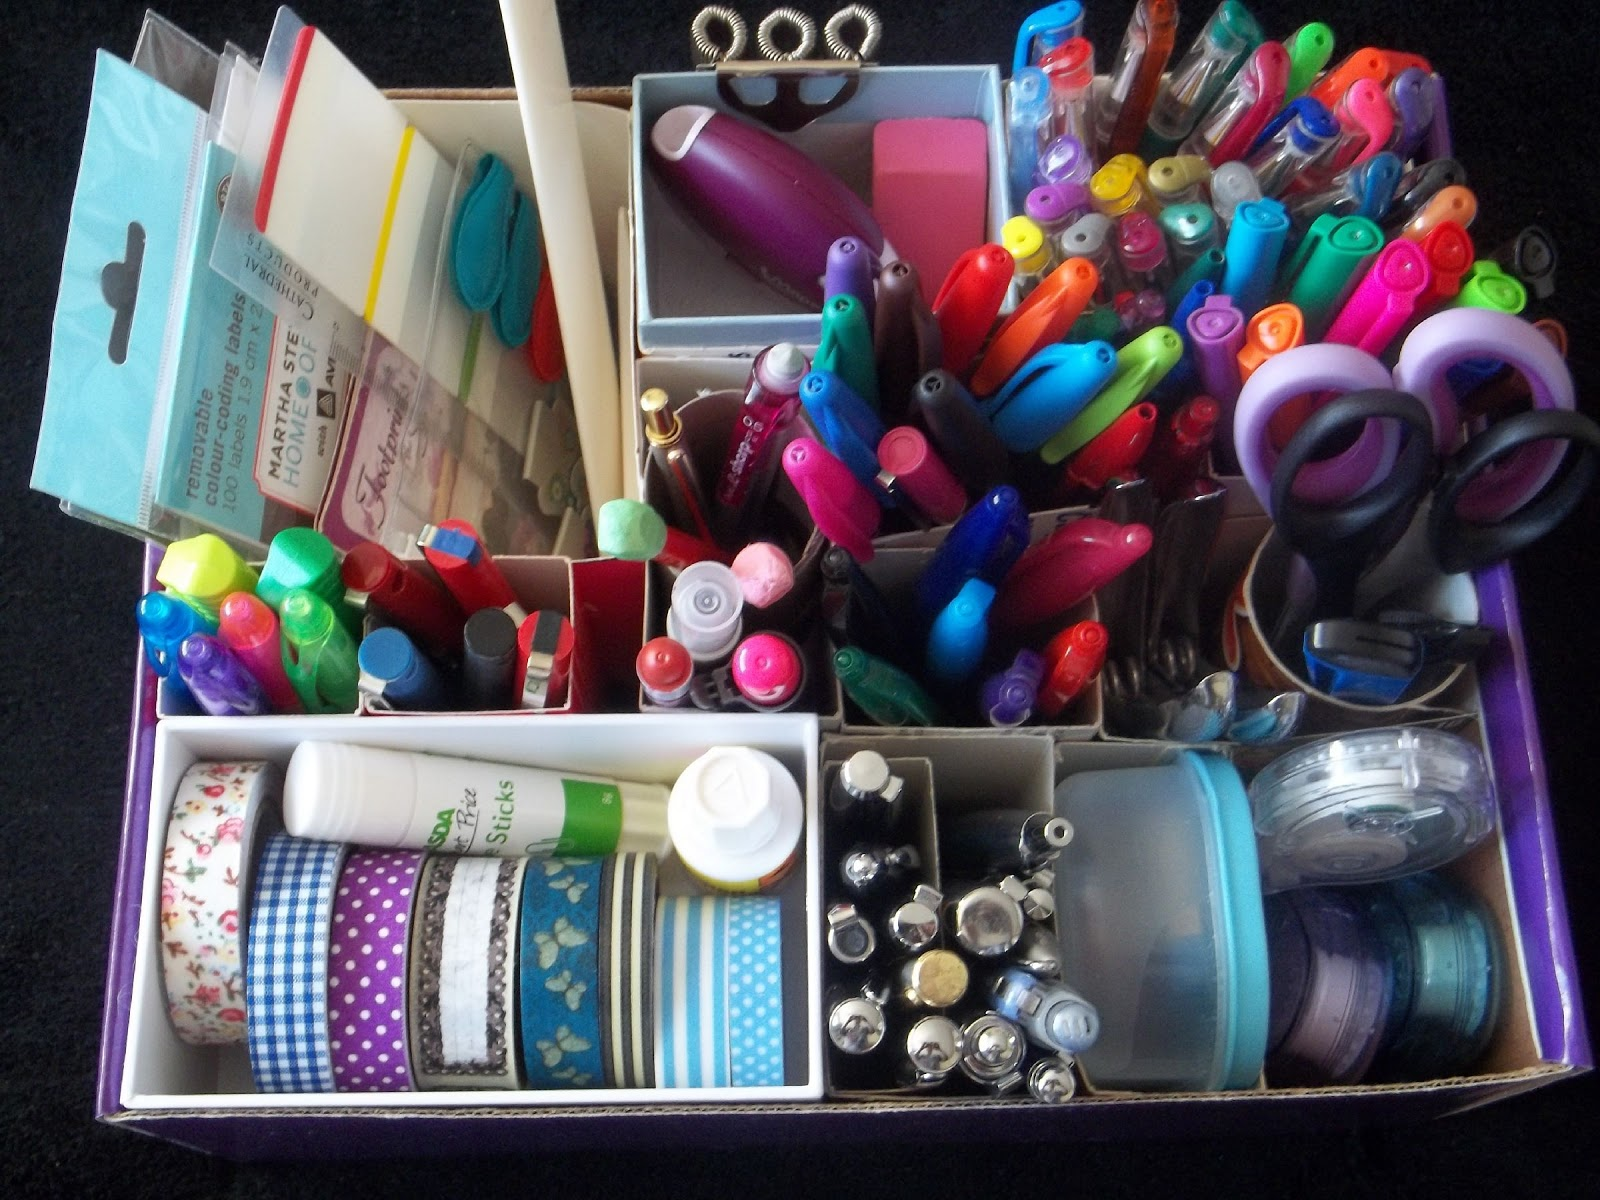 It S My Life Stationary Organisation With My Filofax